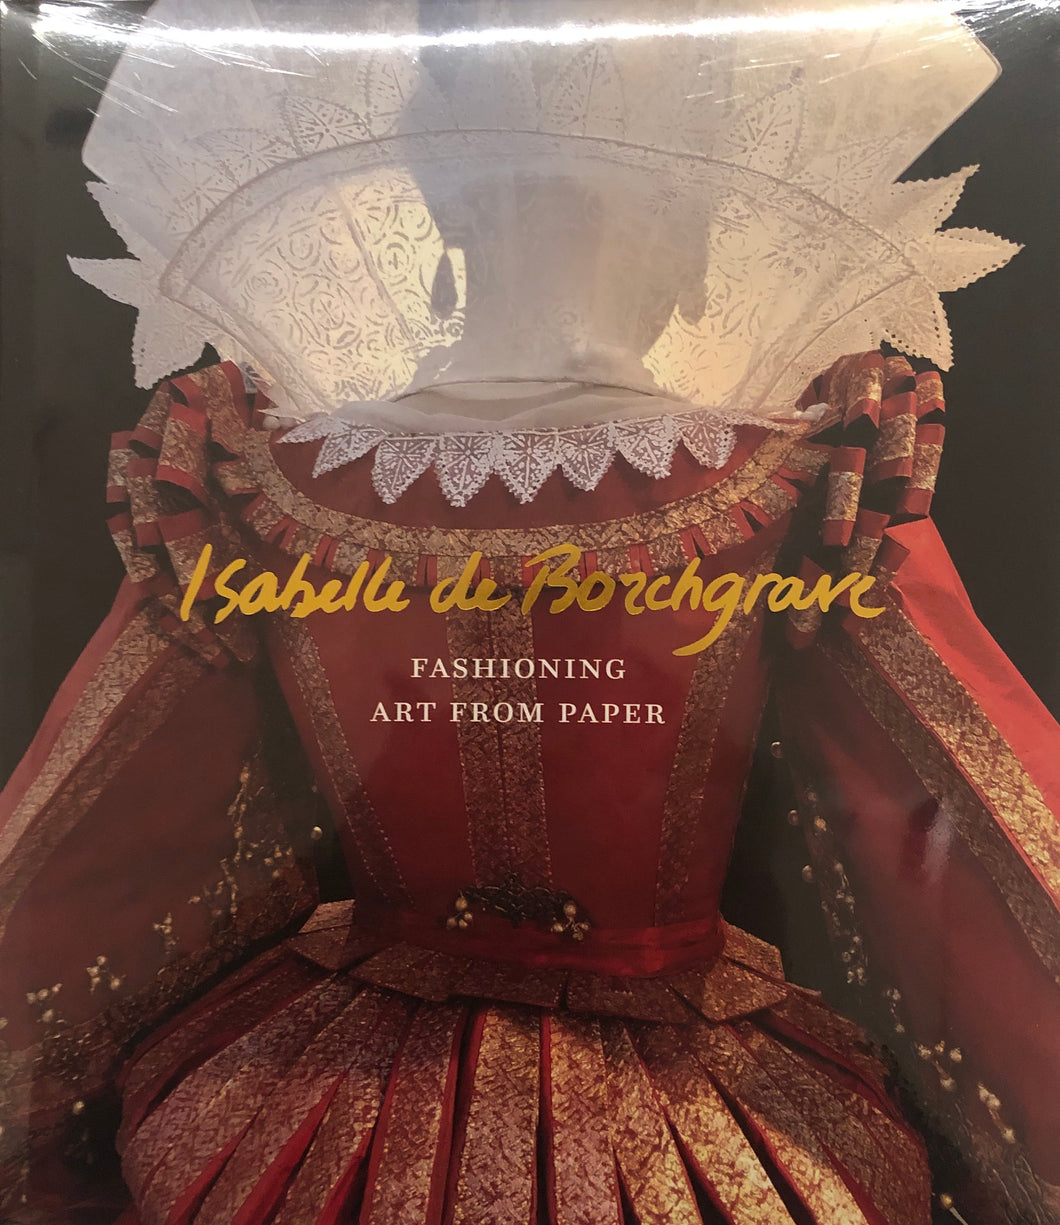 Isabelle de Borchgrave Fashioning Art from Paper